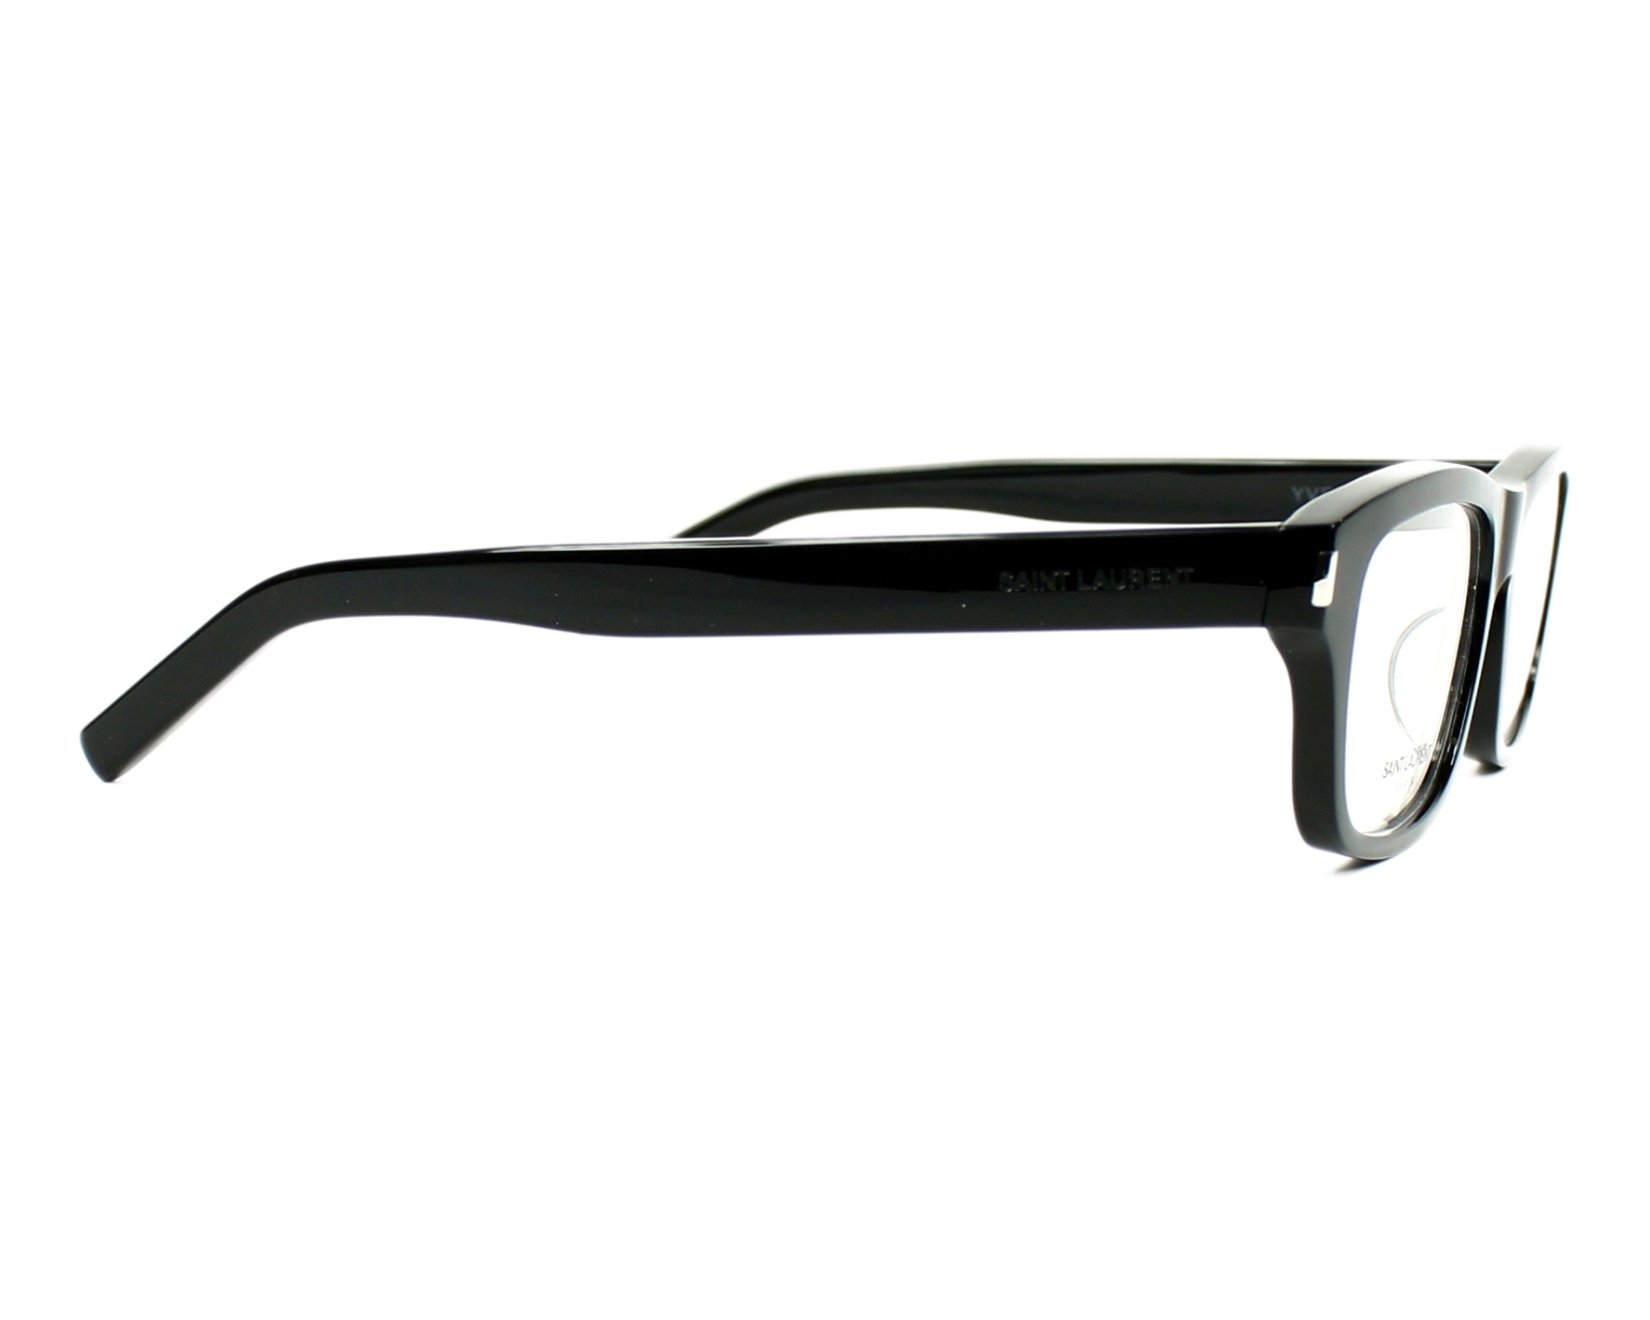 Yves saint laurent eyeglasses yves 6 j 807 black visionet for Miroir yves saint laurent